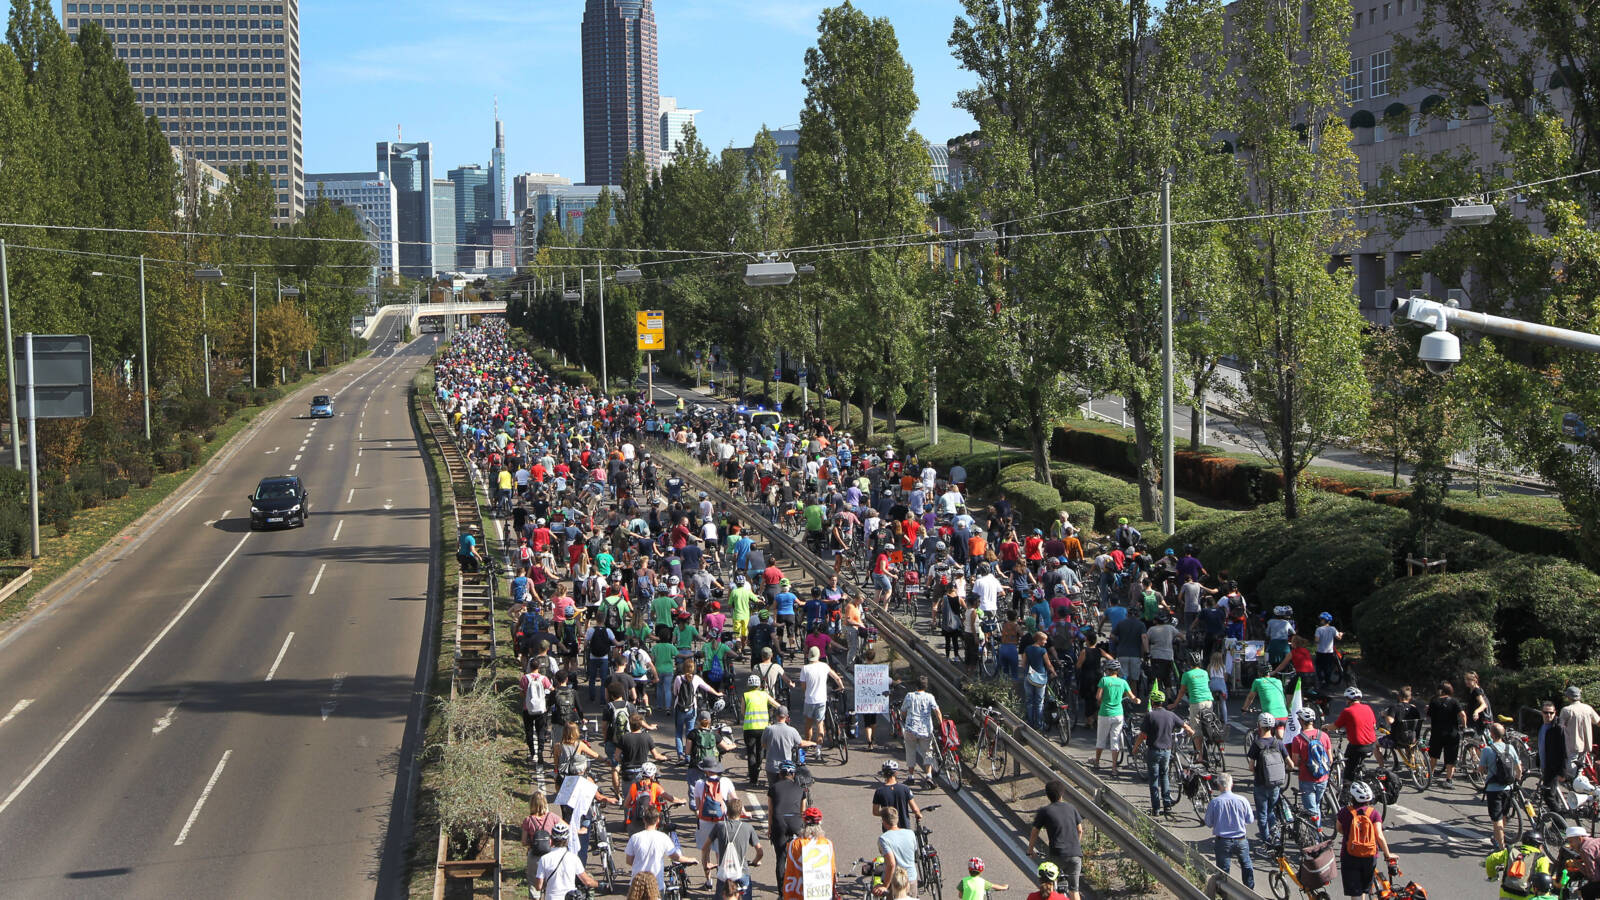 Thousands of cyclists on their way to protest against car corporations' pollution in Germany, AFP photo